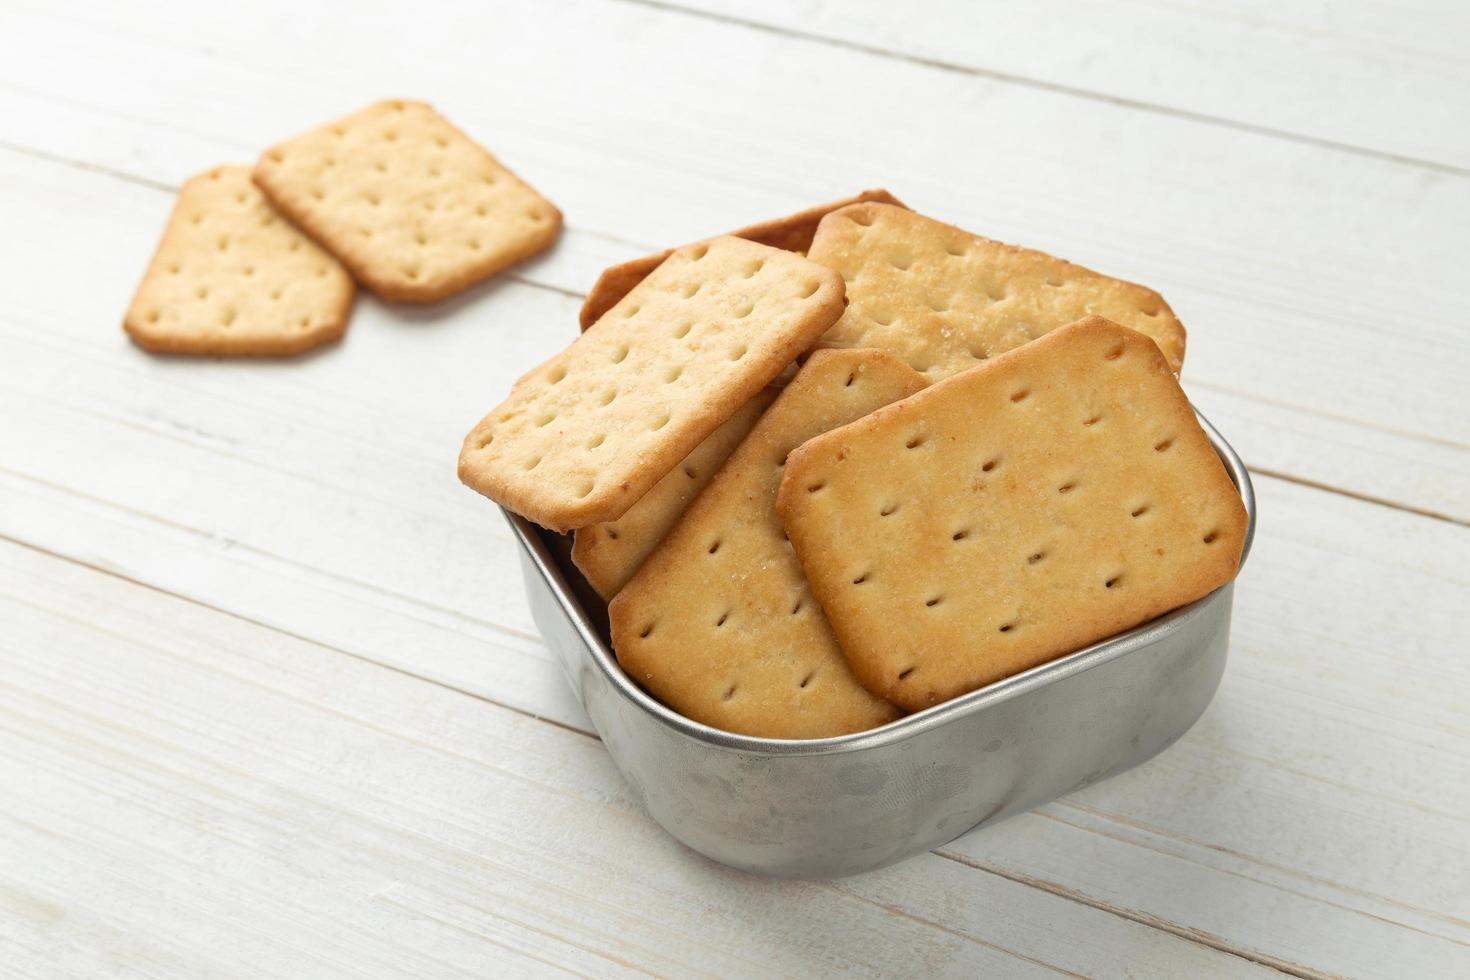 Cracker cookies in a stainless steel bowl photo